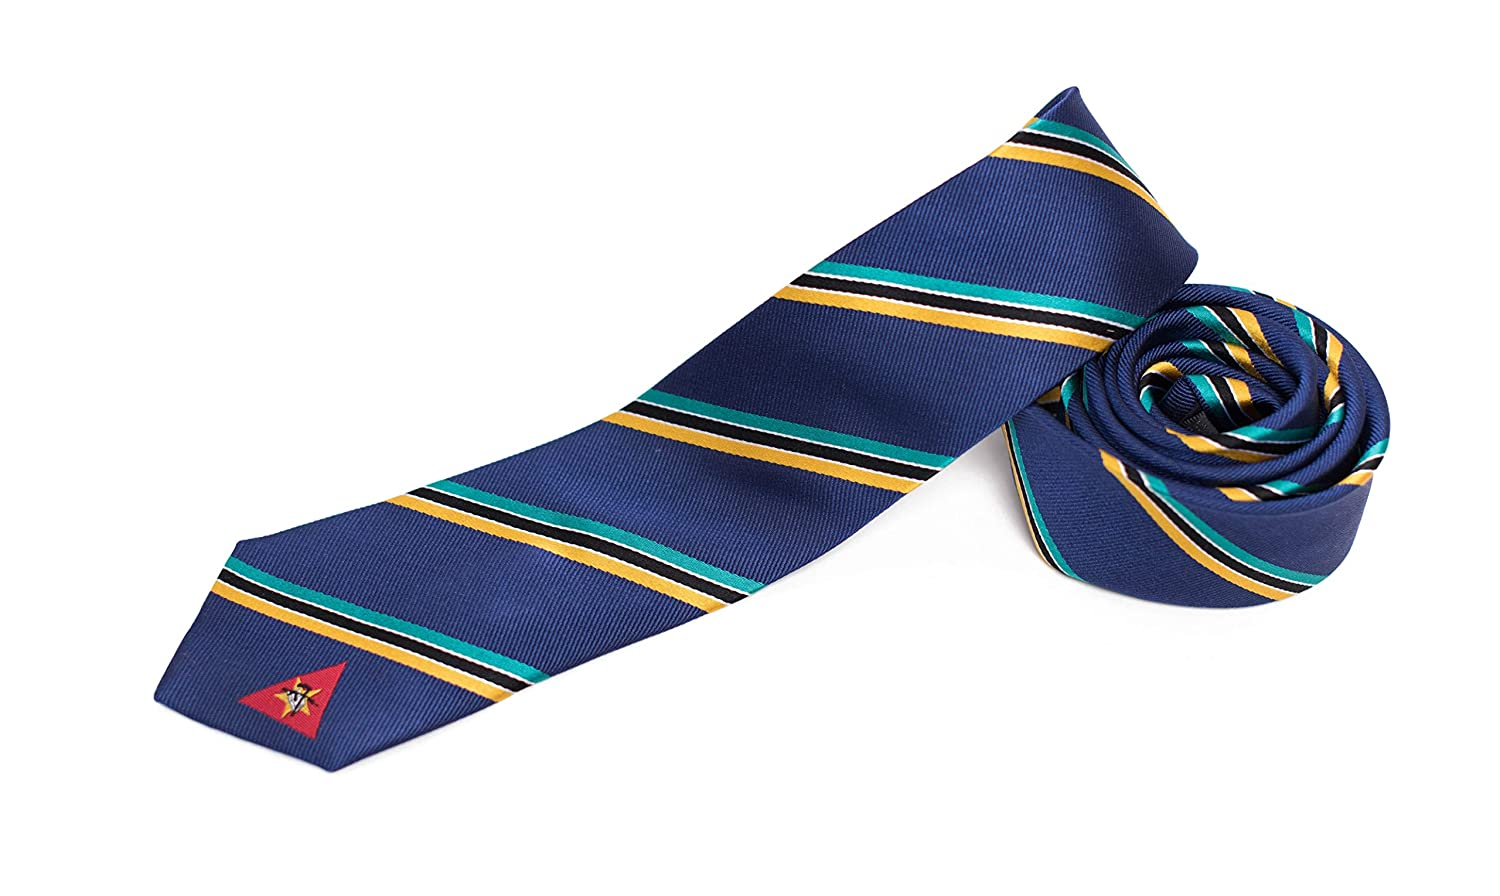 743102bfb909 MENDENG New Classic Plaids Check Baby Blue Jacquard Woven Silk Mens Tie  Necktie NEW6151444 Ties, ...